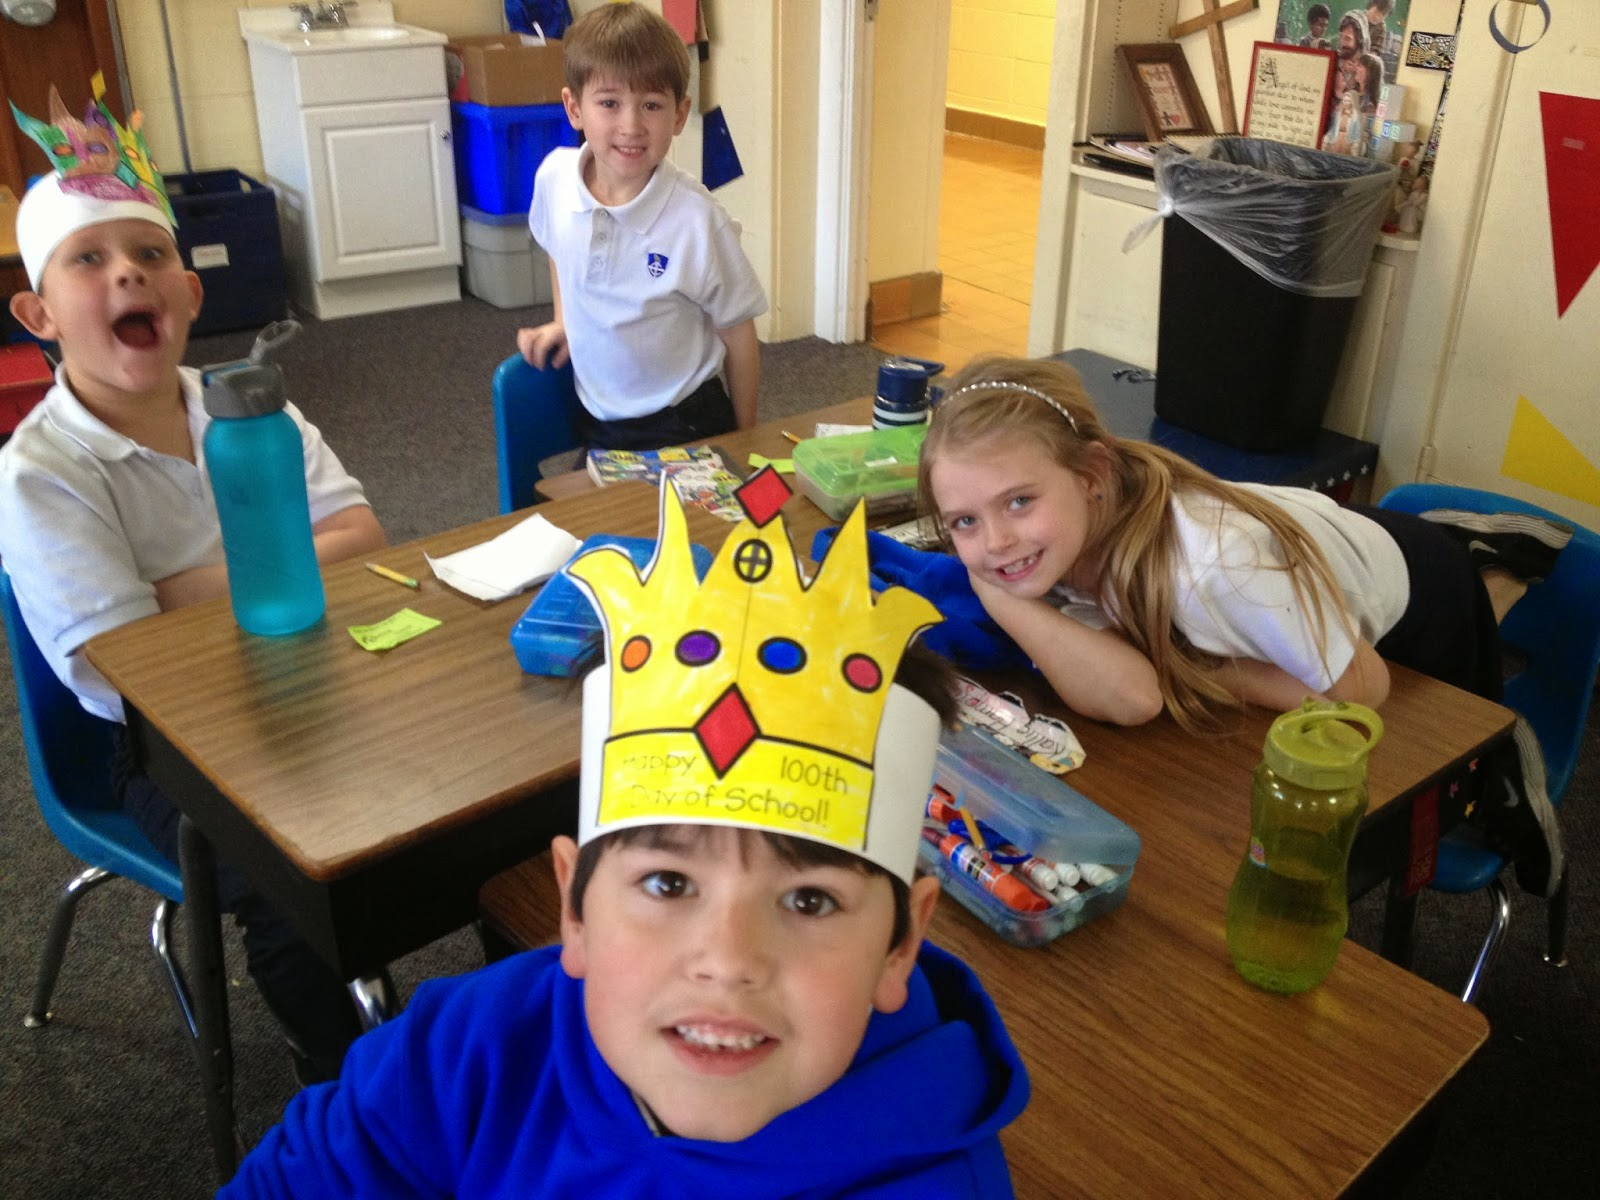 MONTGOMERY CATHOLIC'S ST. BEDE CAMPUS CELEBRATES THE 100TH DAY OF SCHOOL IN CREATIVE WAYS. 1